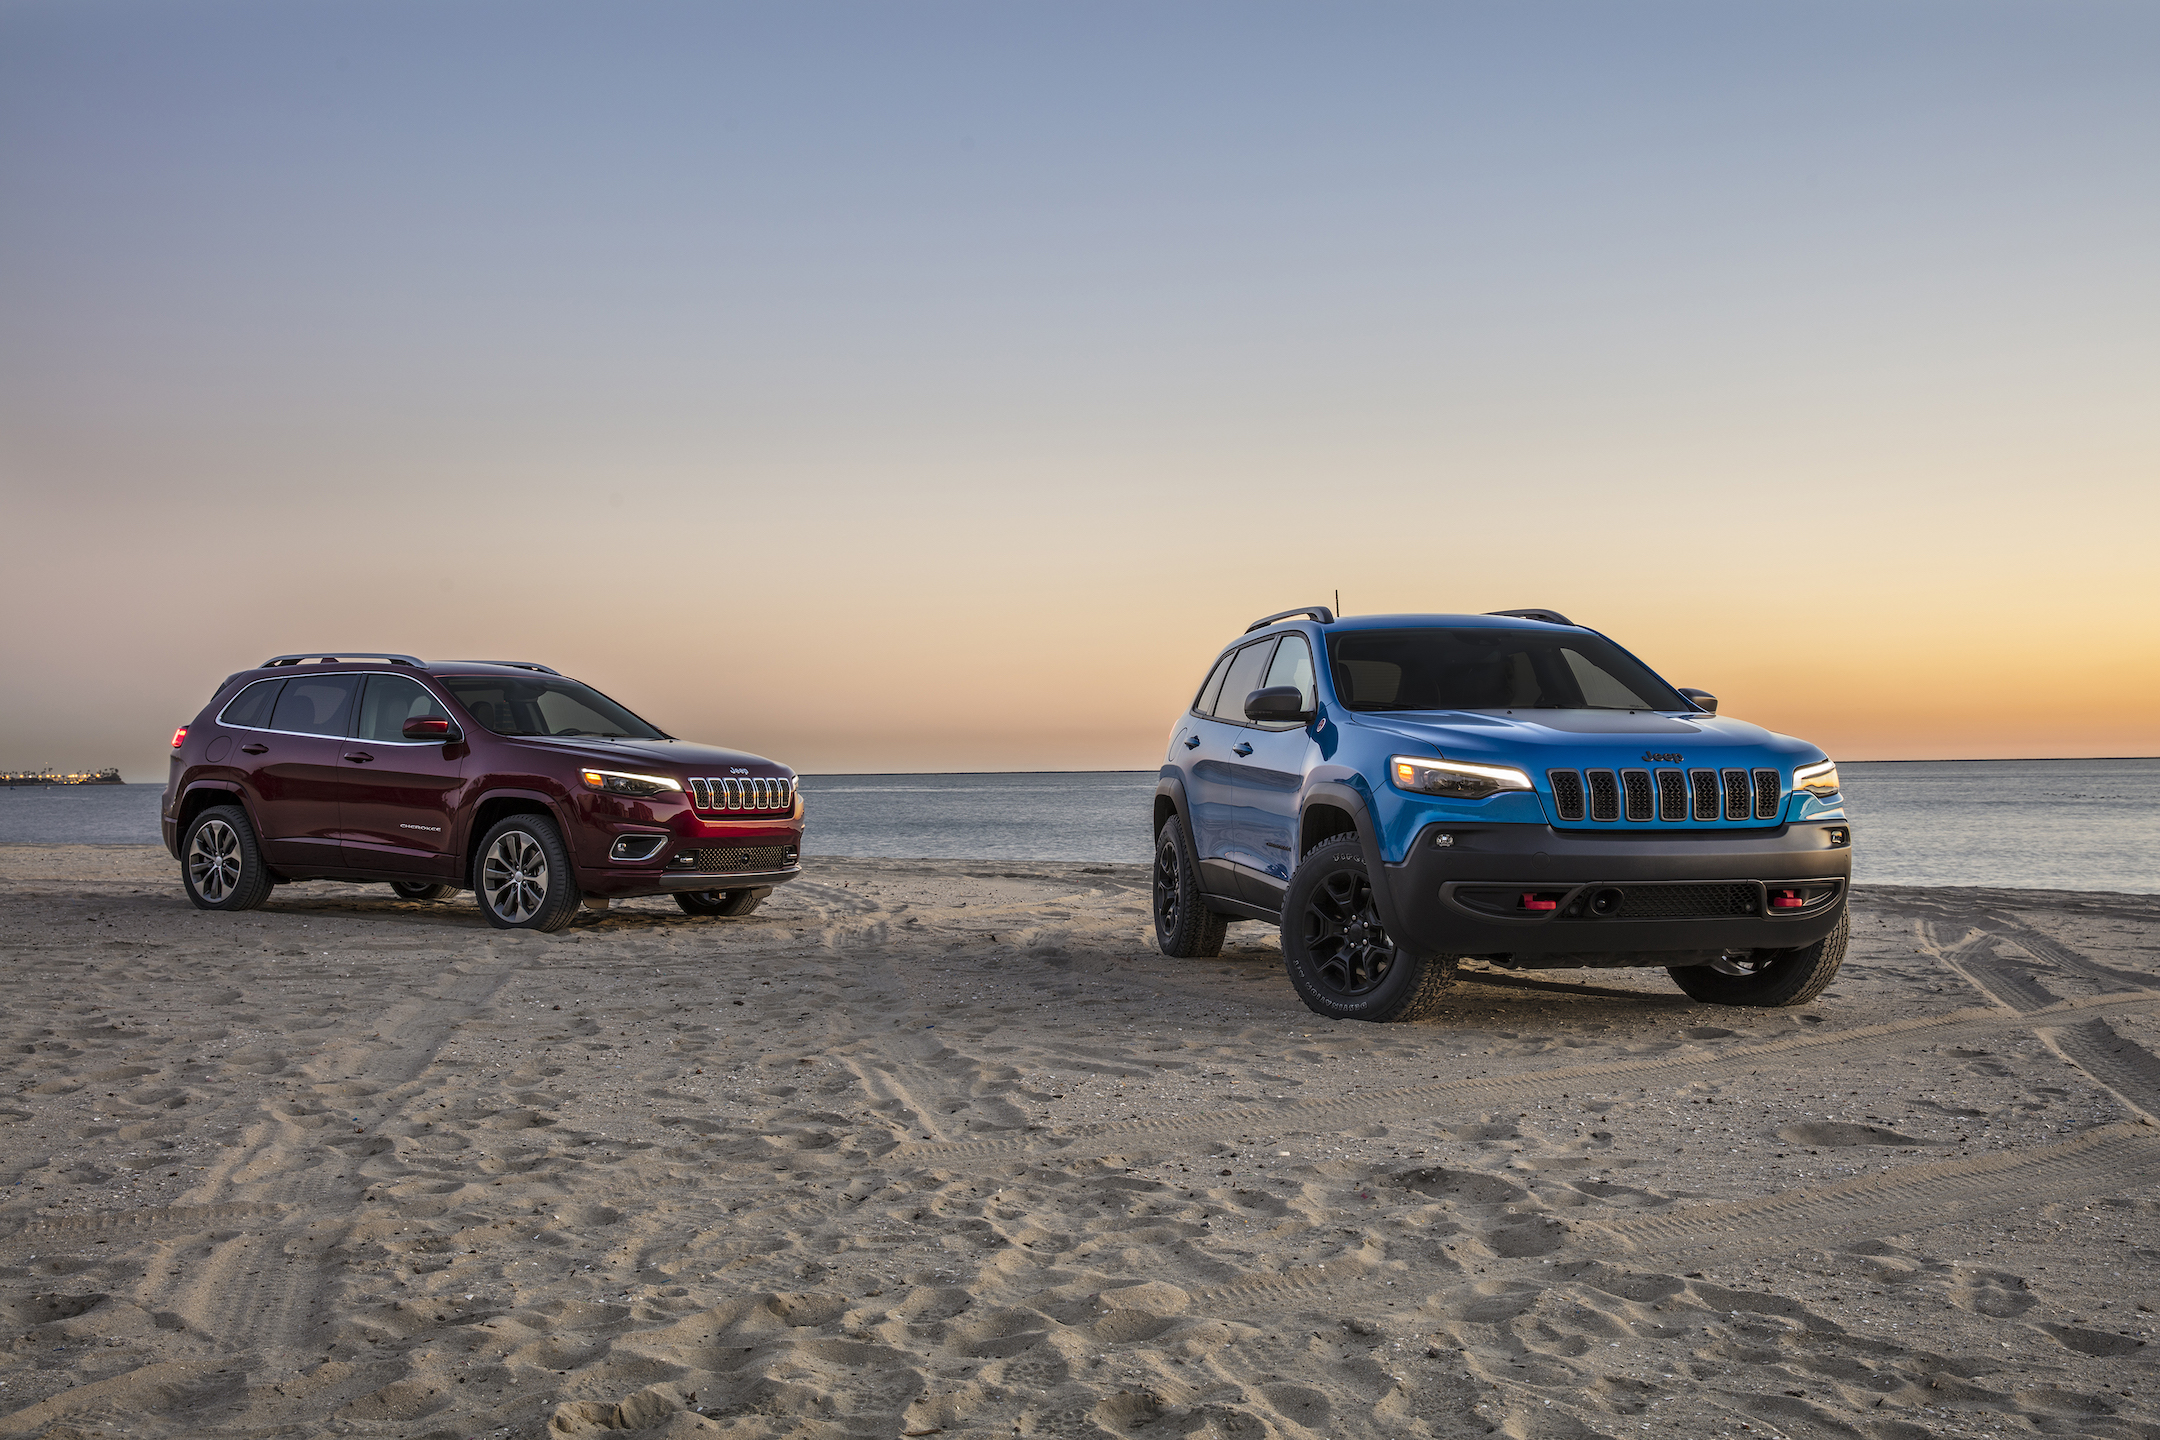 2019 Jeep® Cherokee Overland and Cherokee Trailhawk